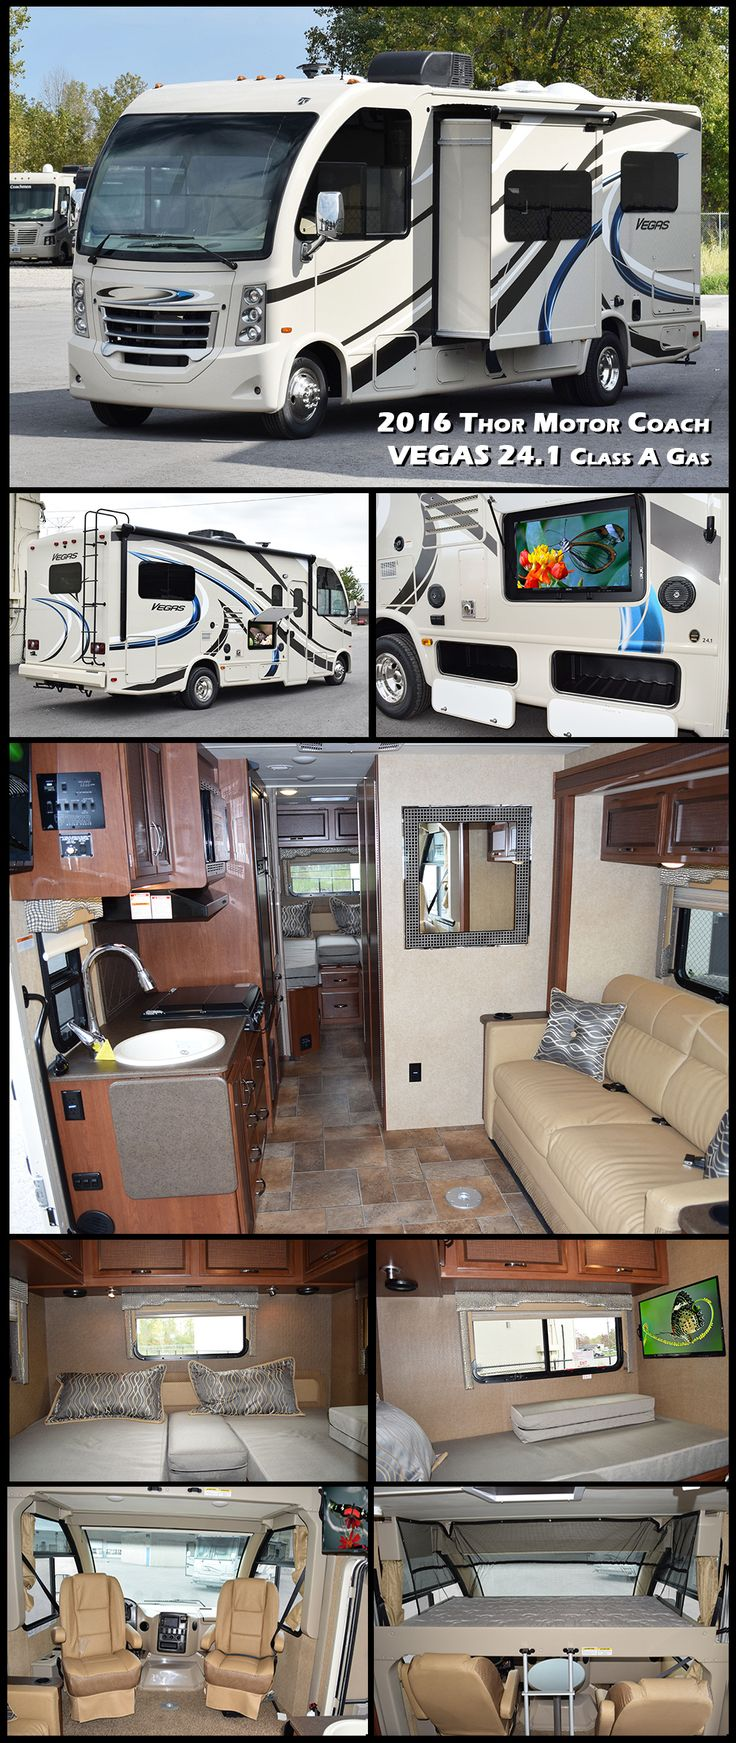 """Treat yourself with this 2016 THOR MOTOR COACH VEGAS 24.1 Class A Gas Motorhome. This is what Thor considers an RUV or """"Recreational Utility Vehicle"""" because it is intended to be used for everything from your mobile hotel room when your kids have an out of town sports game, to your home-away-from-home on a cross country road trip!"""